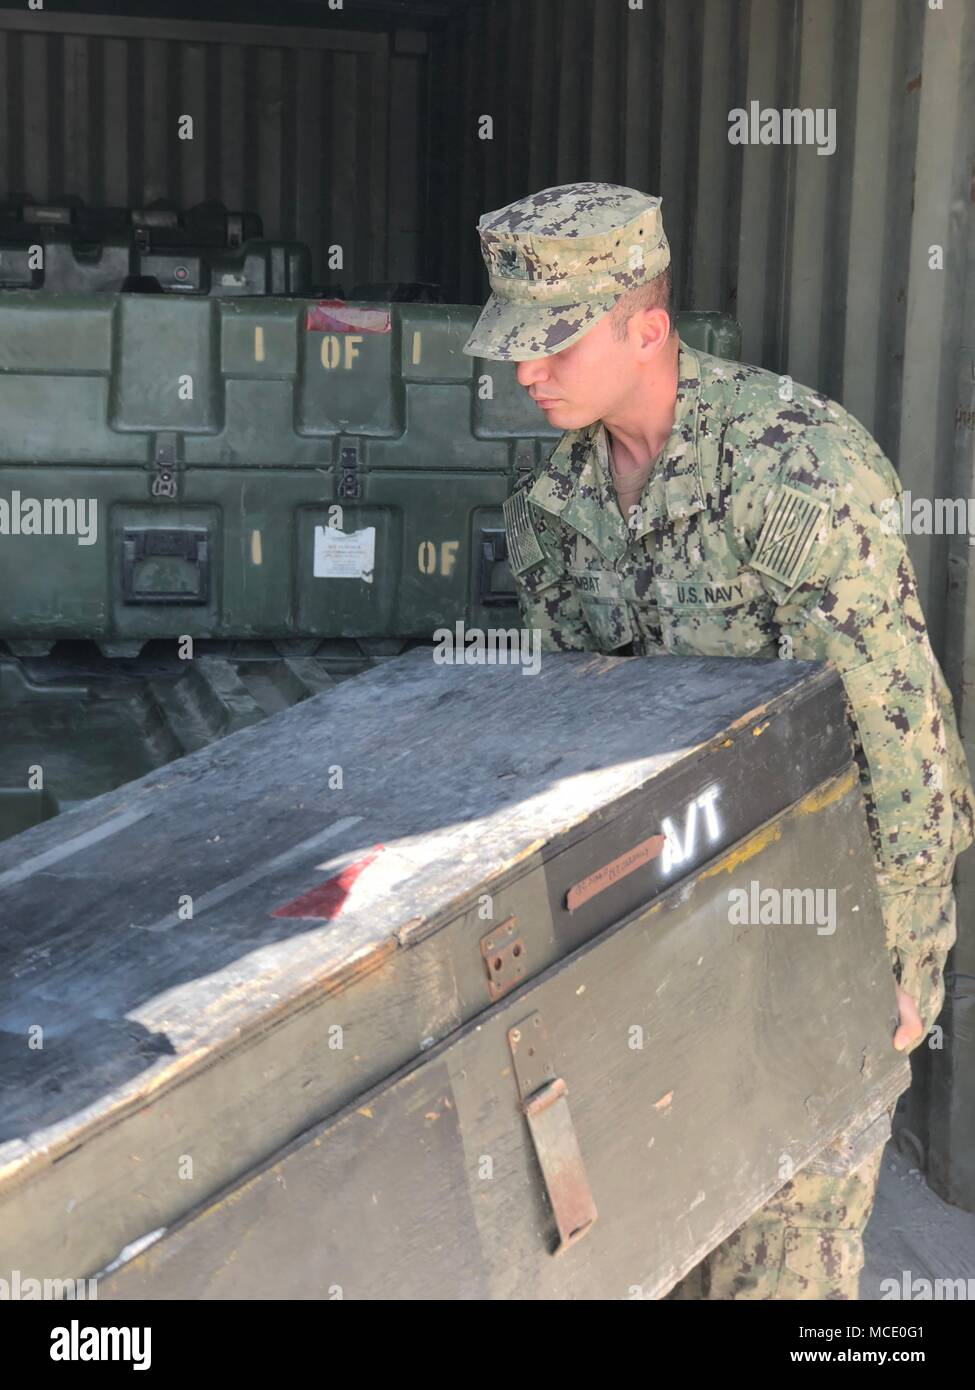 Construction Electrician 3rd Class Enes Cimbat,  a Seabee assigned to Naval Mobile Construction Battalion (NMCB) 11, helps load kit boxes for turnover with NMCB 133. NMCB 11 is homeported in Gulfport, Mississippi, and is part of the Naval Construction Force (NCF). They currently have personnel assigned to more than 15 locations world-wide, performing a variety of missions in support of the Navy and the Department of Defense. Stock Photo